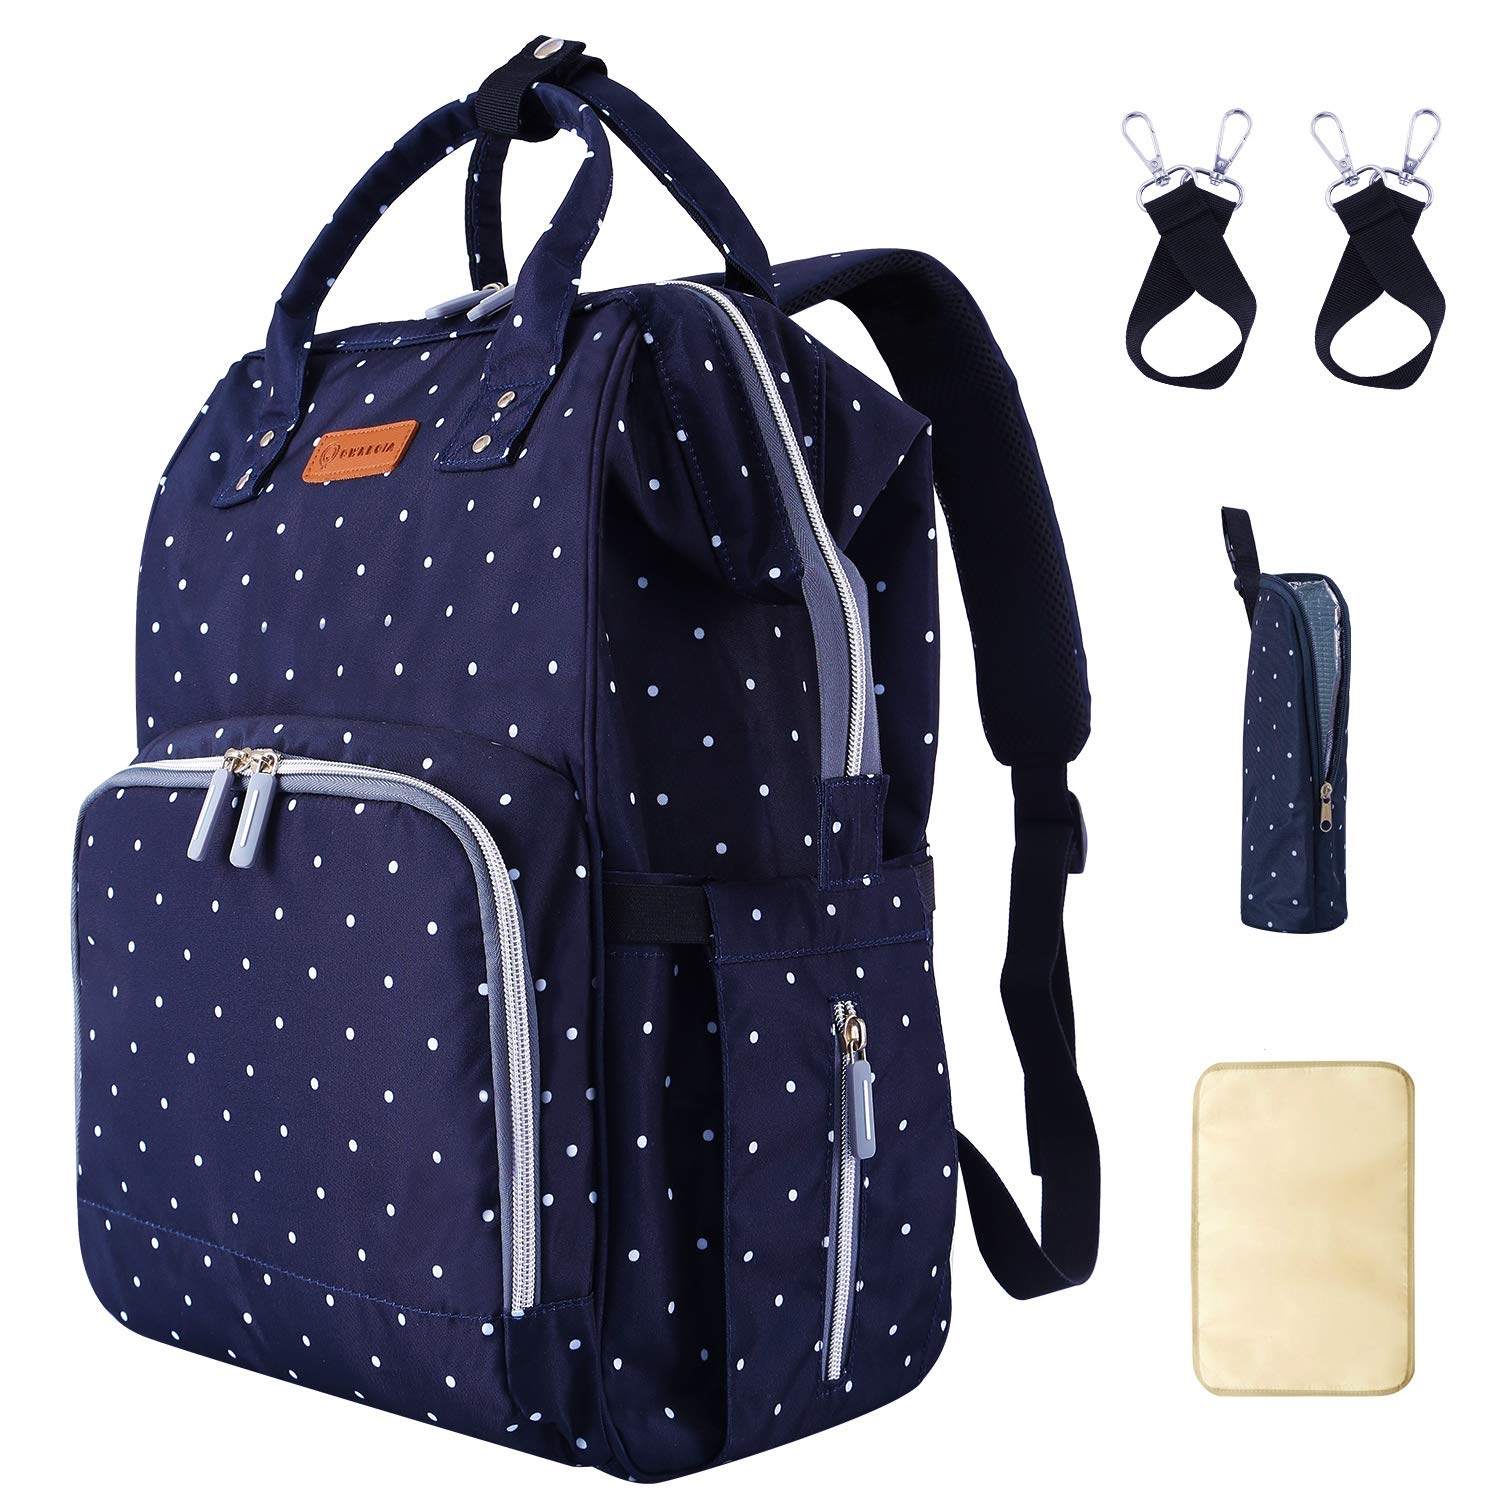 Diaper Bag Backpack for baby with USB Charging Port Stroller Straps Insulated Pocket and Changing Pad For Women/Girls/Mum/Toddler Polka Dot Blue by Qwreoia